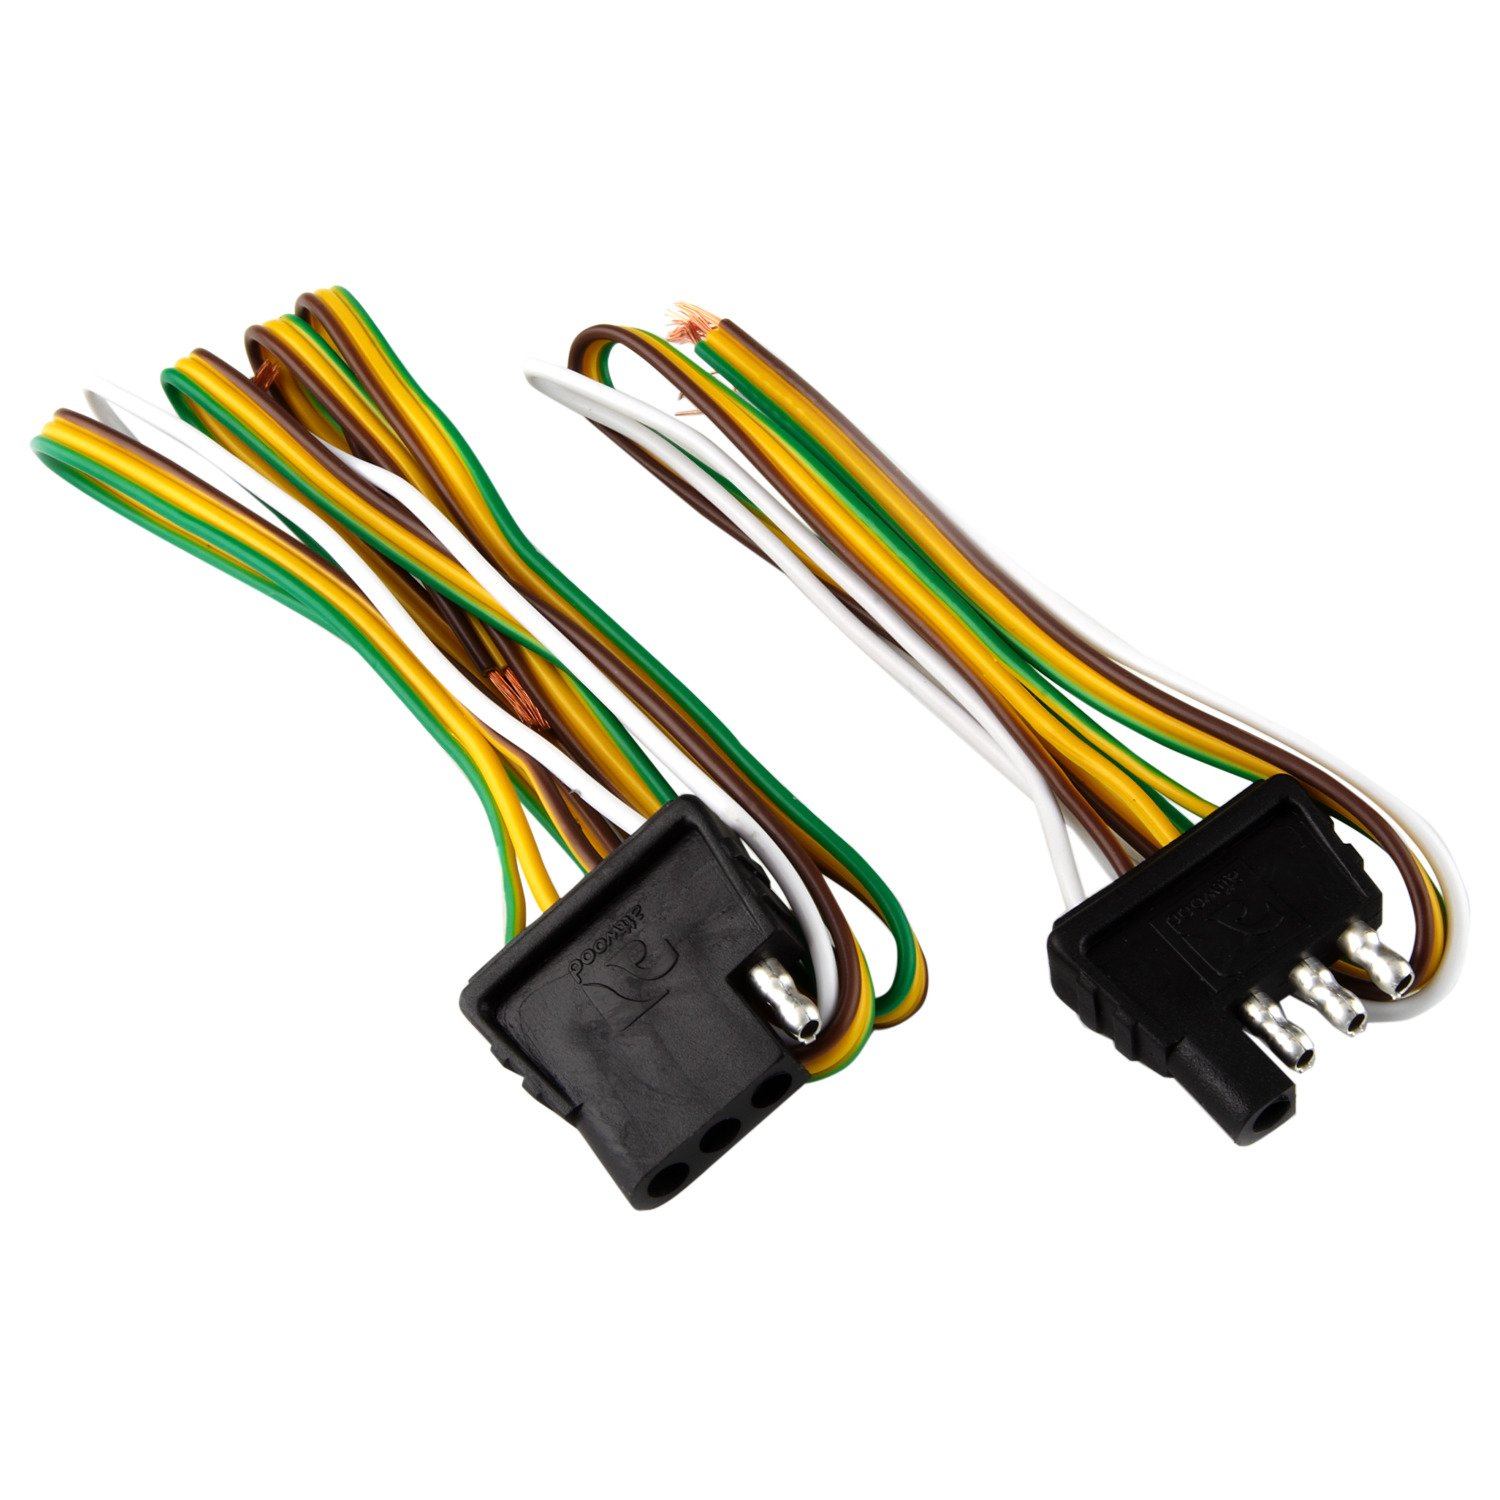 medium resolution of attwood 4 way flat wiring harness kit for vehicles and trailers 4 way flat connector for ford 4 way wiring harness